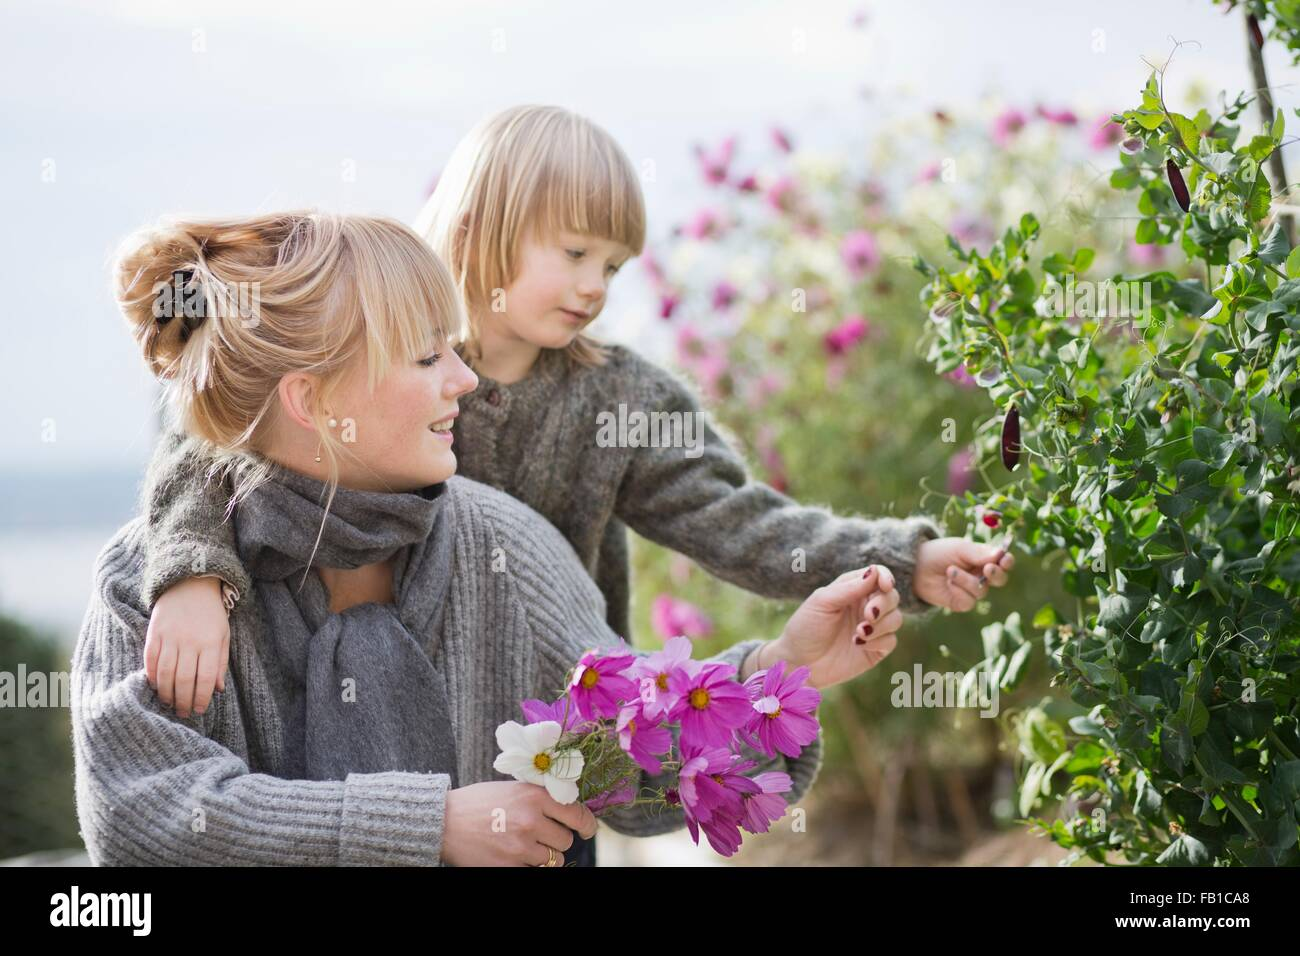 Boy and mother tending flowers in organic garden - Stock Image